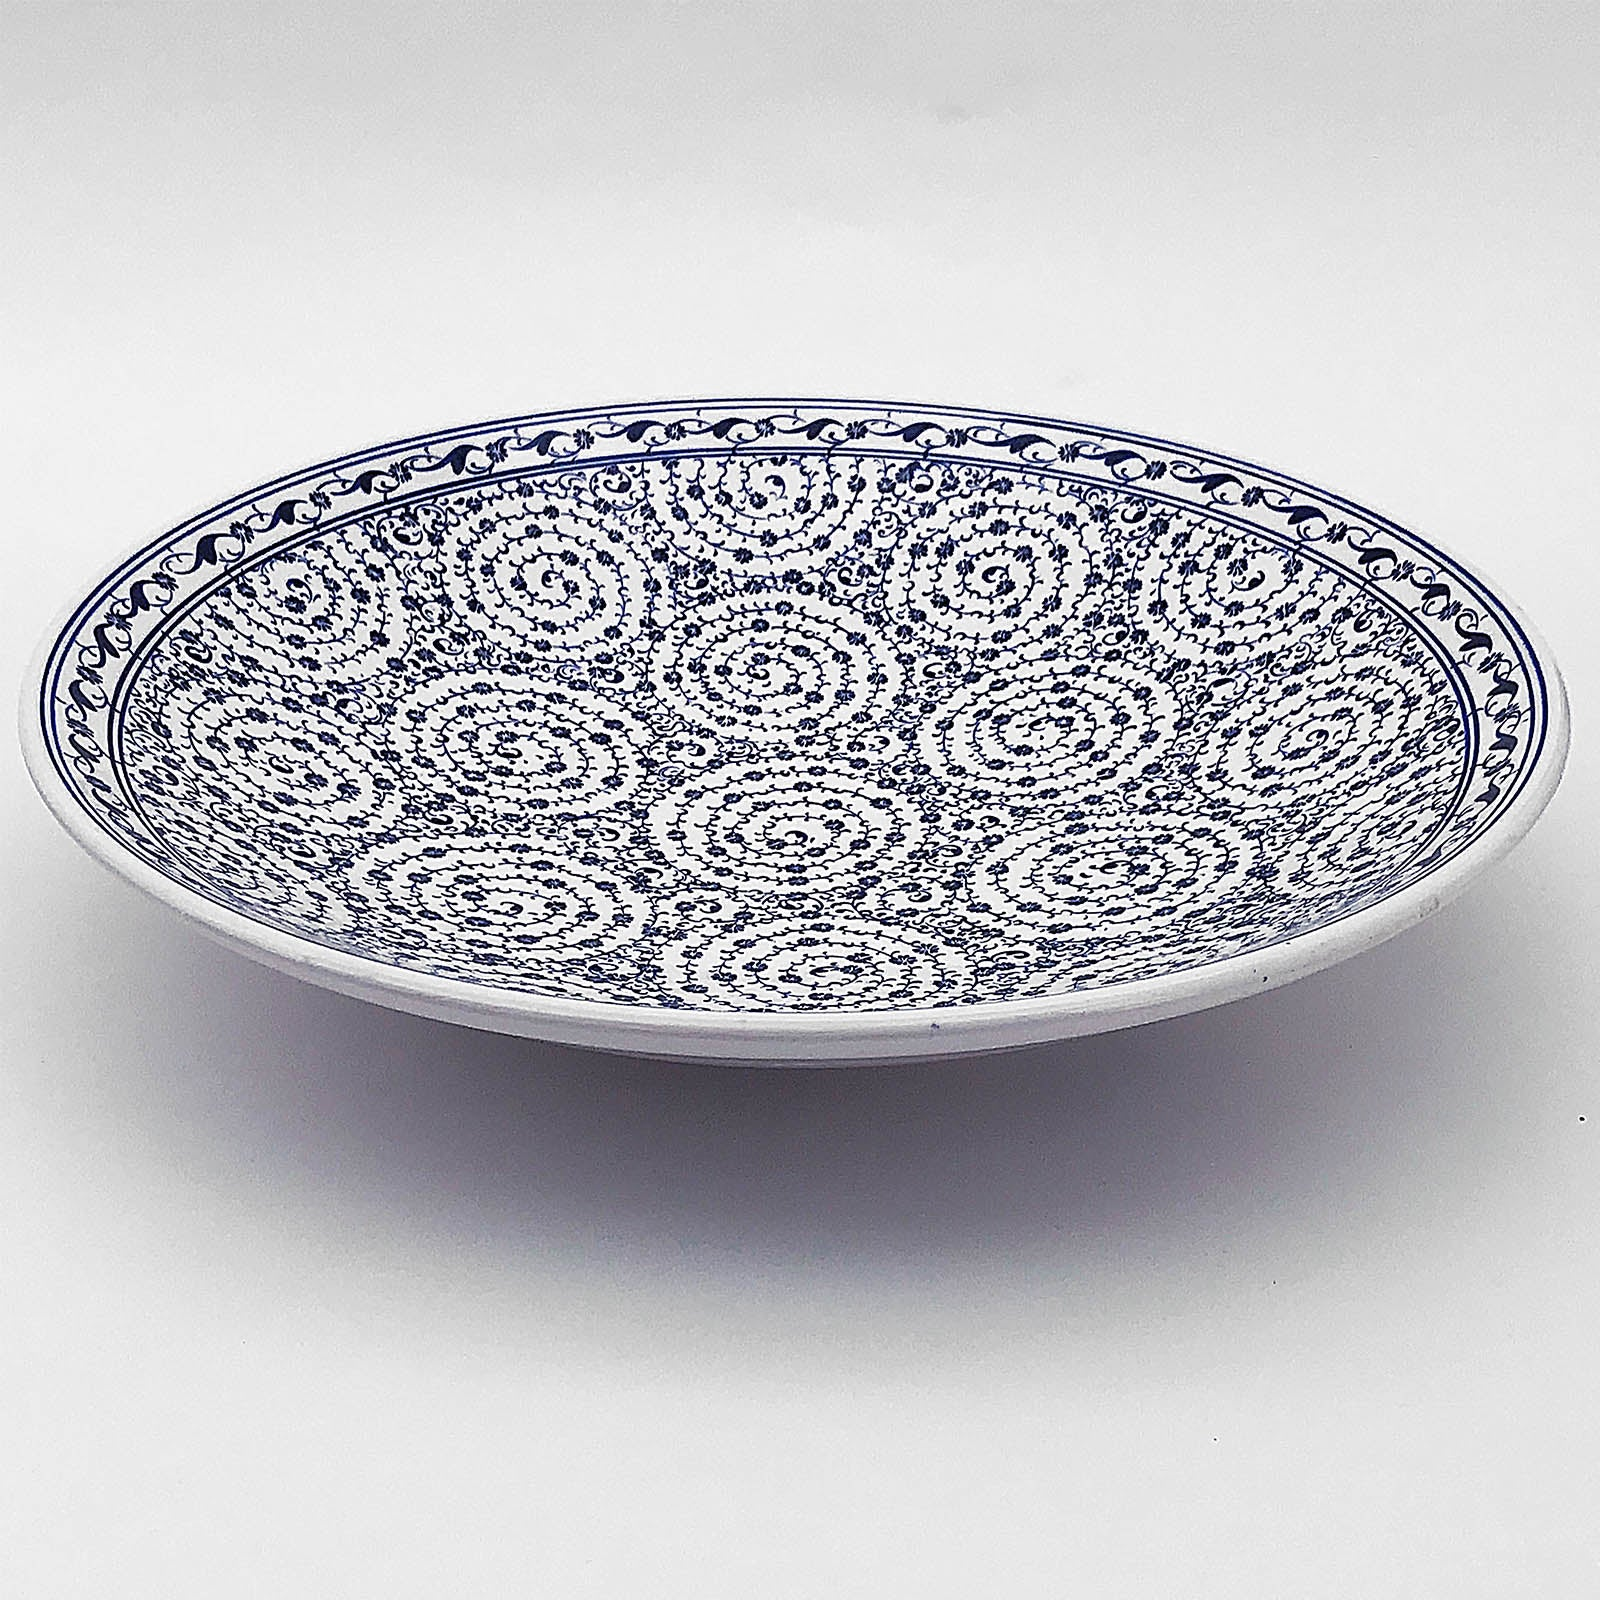 Handmade Kutaya Turkish ceramic plate  KUC012